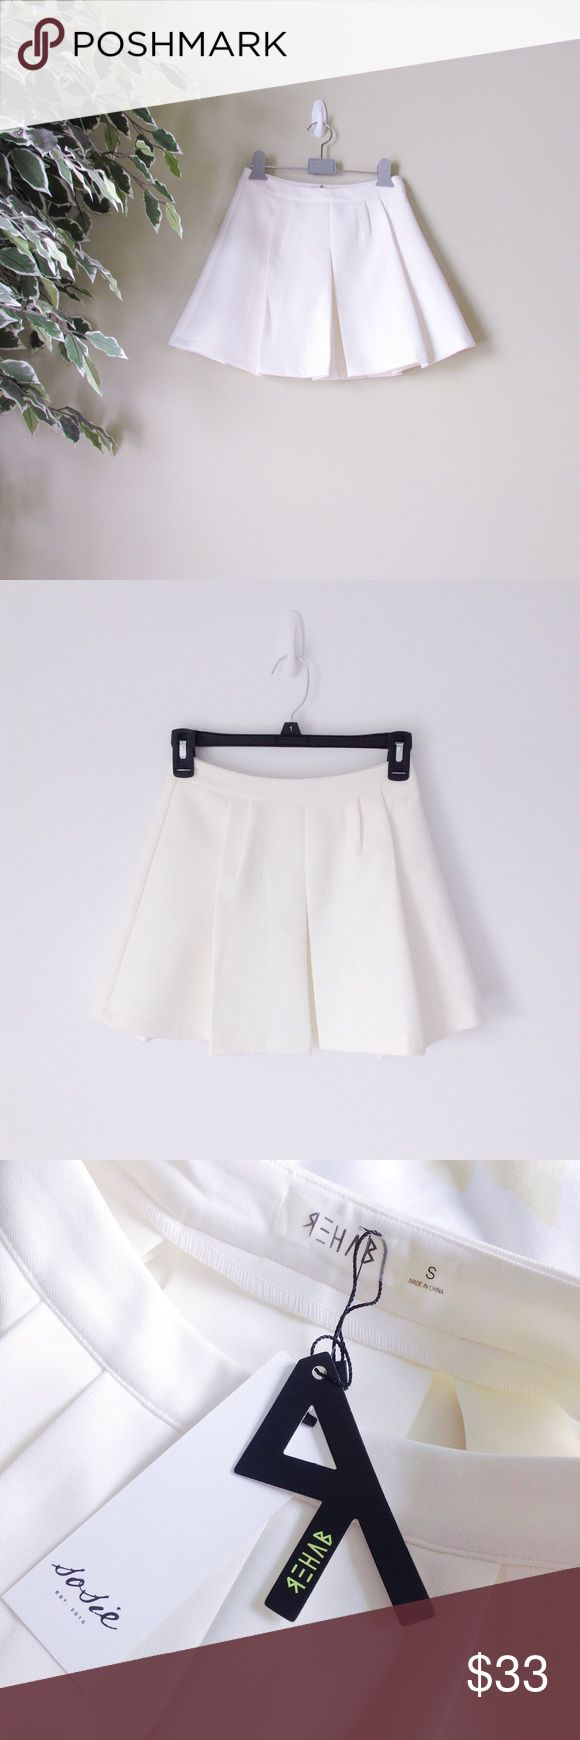 Rehab // White/Cream Pleated Skirt Pleated white/cream skirt! Made from a thicker material. Runs small. Will best fit those who are a size XS or XXS. Waist measures 11.5 in. Side zipper. 100% polyester. Slight discoloration on the side of skirt but very faint and hardly noticeable. Brand new.   Please ask all questions before purchase.  Colors may vary from one device/monitor to another as well as in person.  Discounted bundles || No trades/holds Rehab Skirts